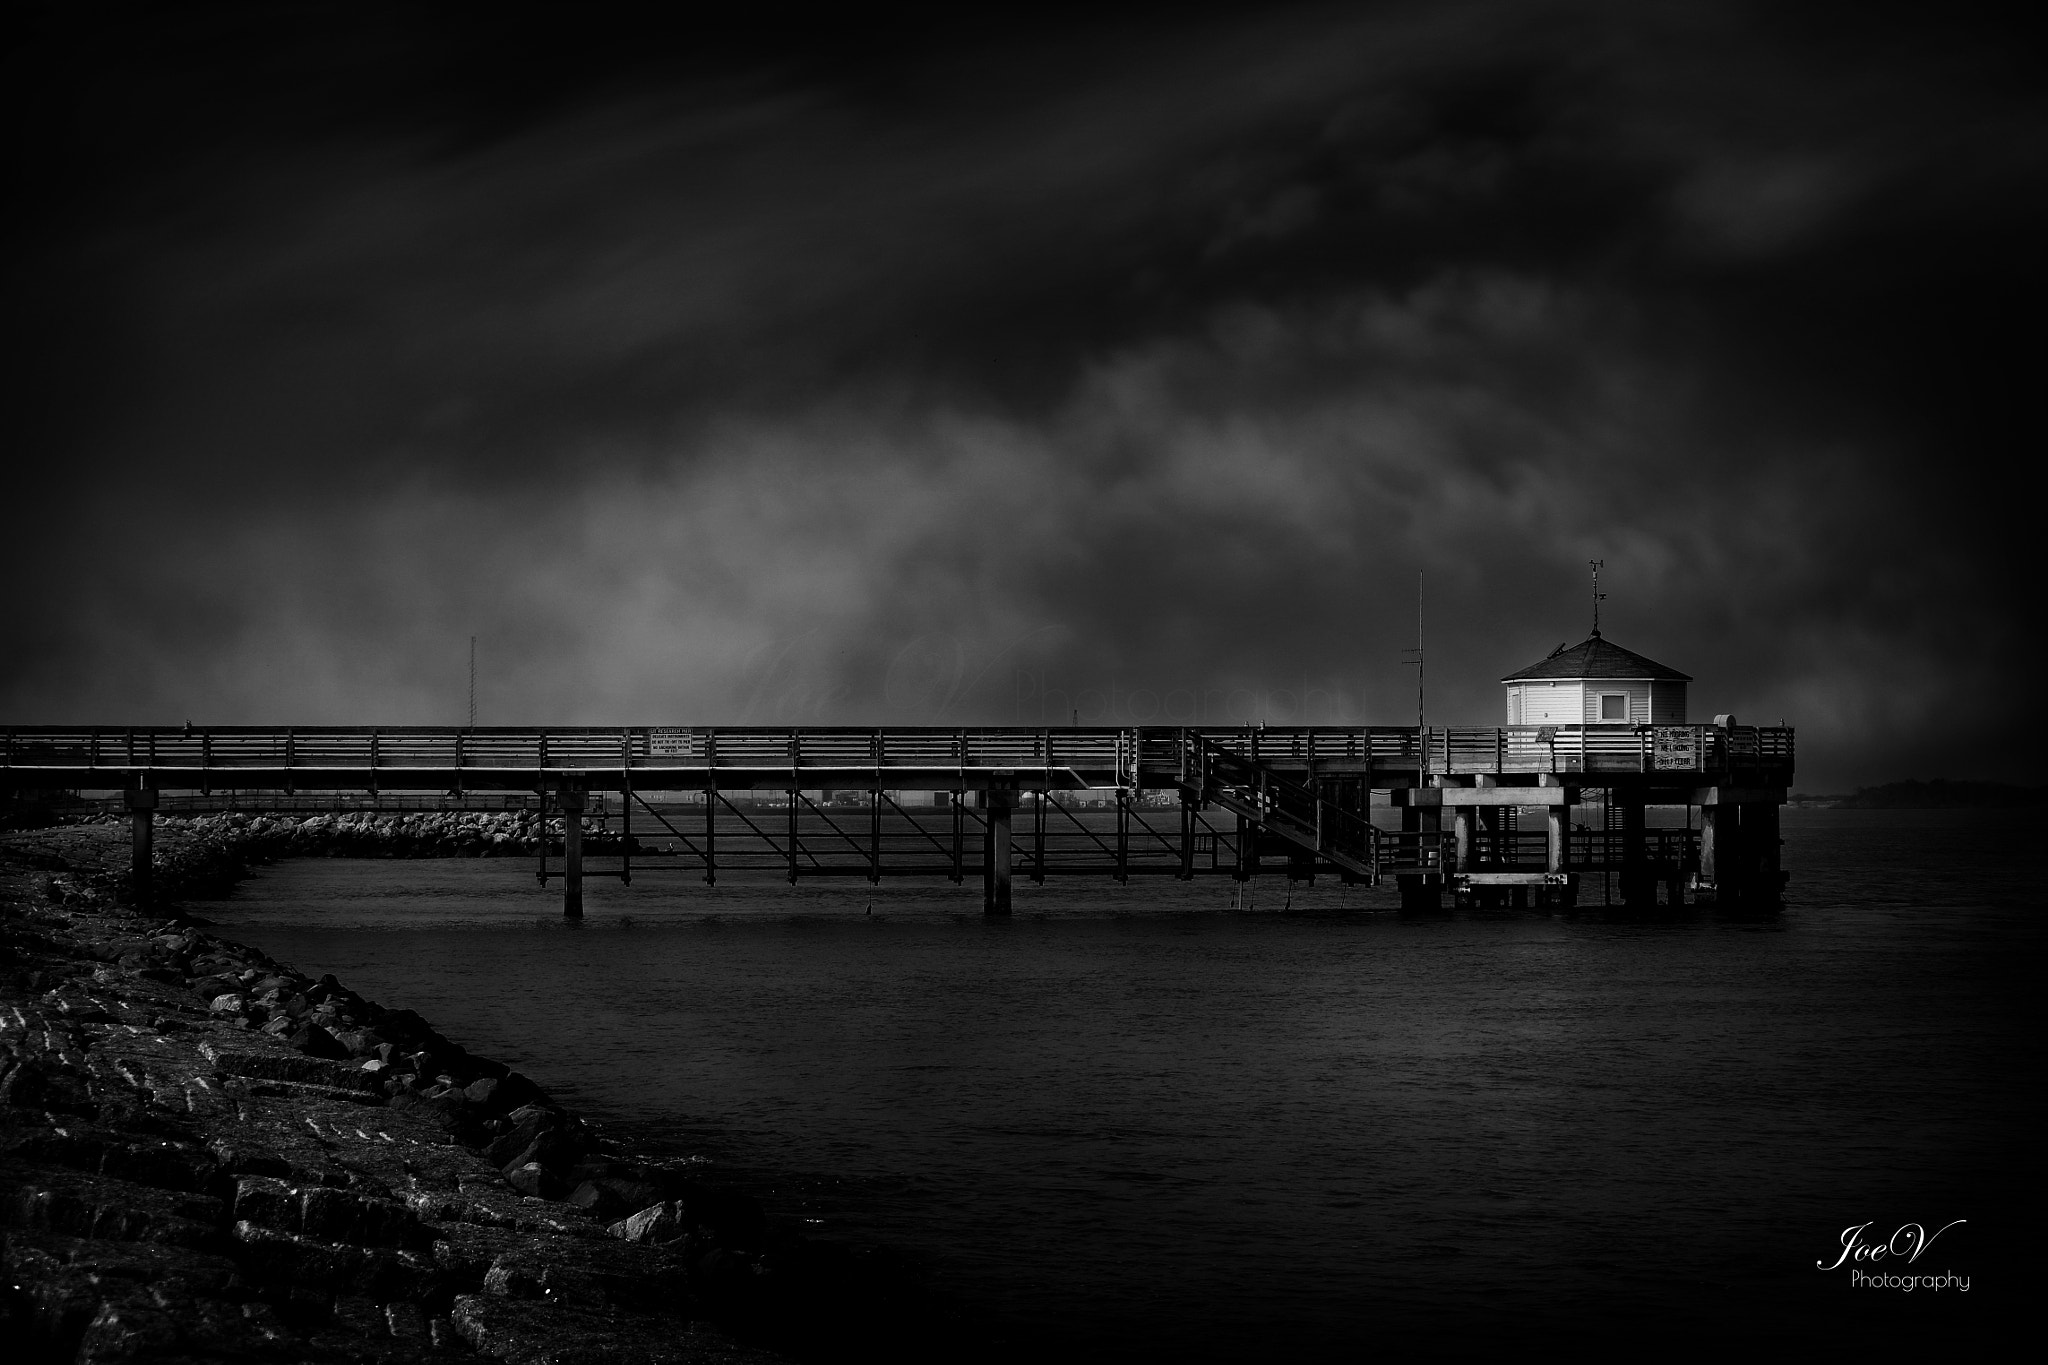 Photograph The Pier by Joe V on 500px